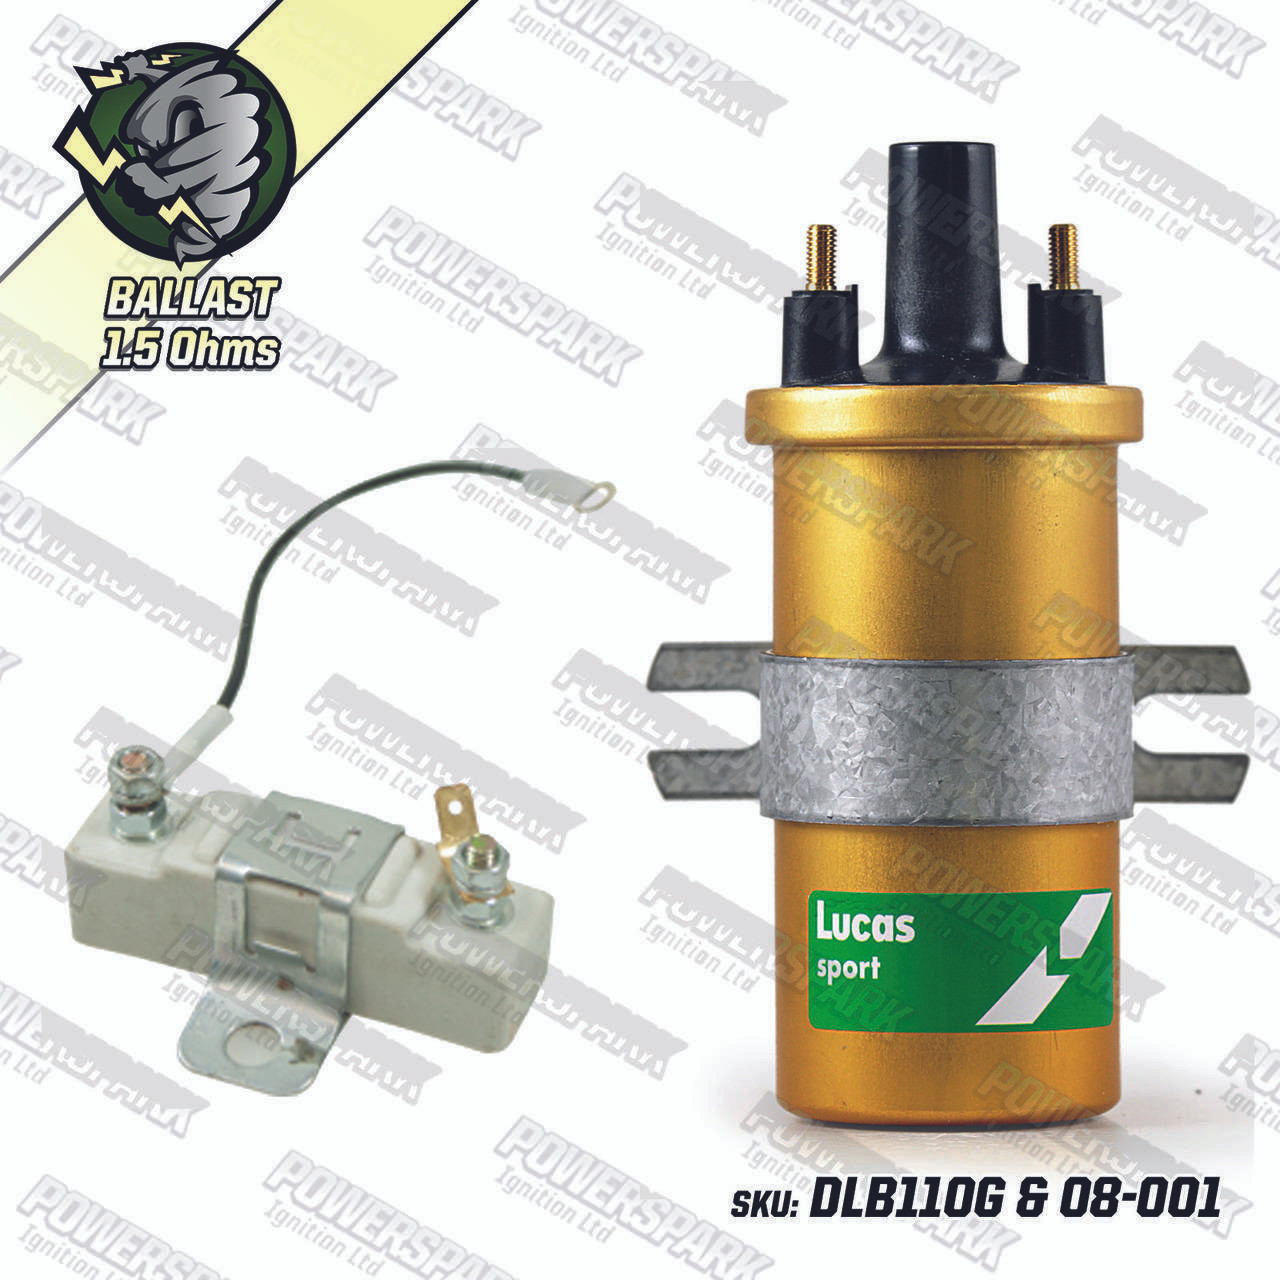 Genuine Lucas DLB110 Ballast Ignition sports coil GOLD with Ballast